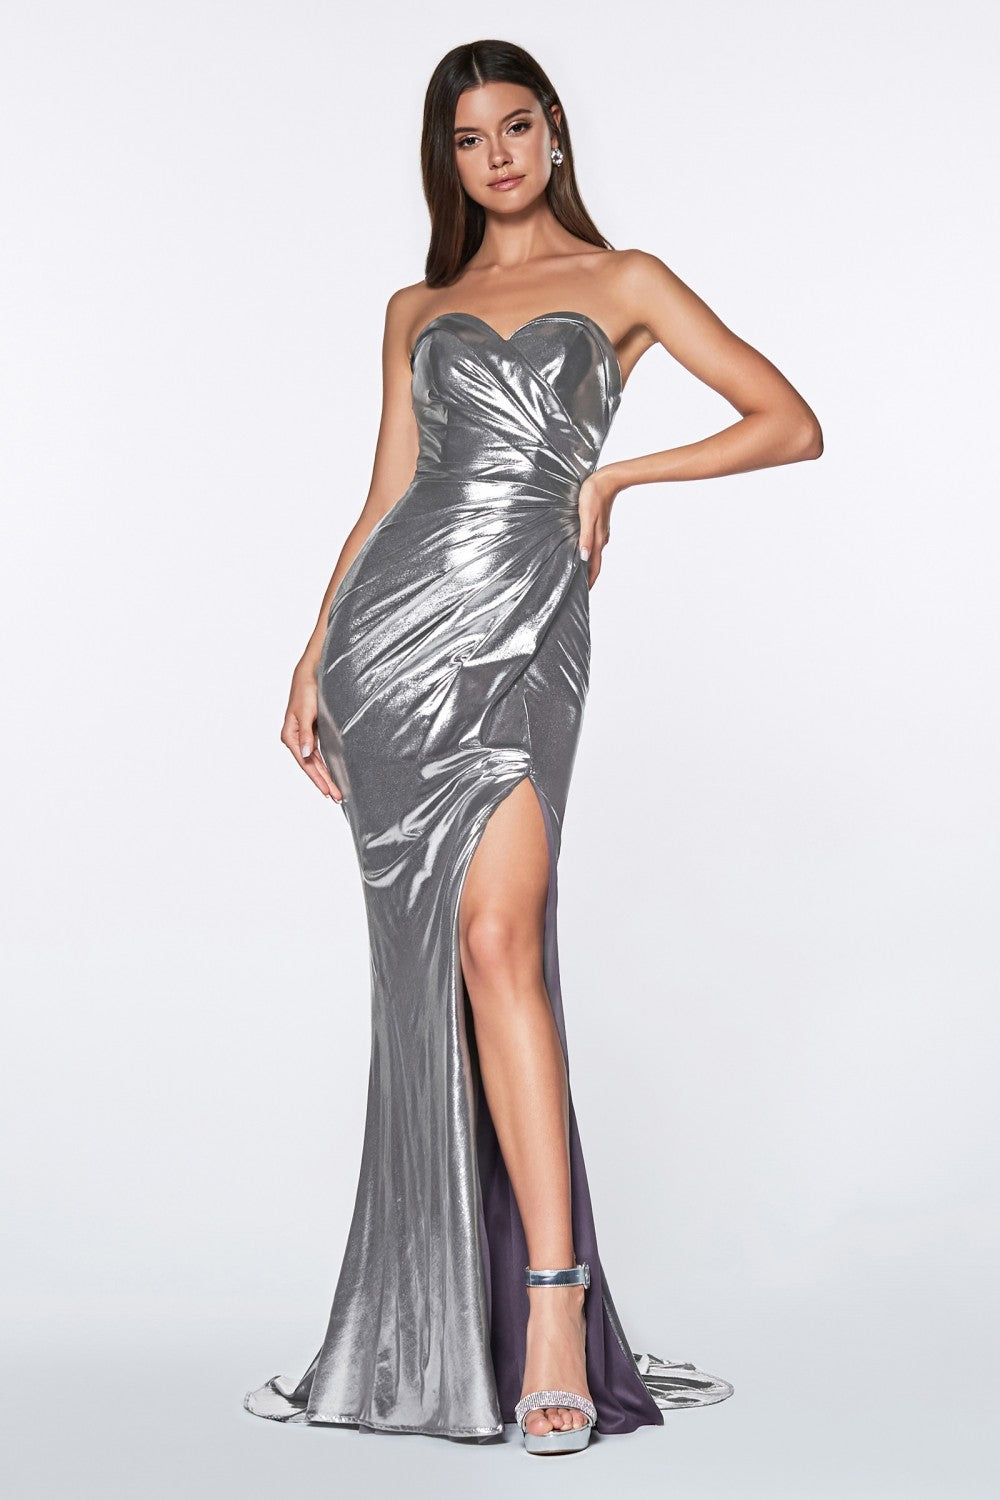 Strapless Fitted Gown With Shiny Metallic Fabric And Leg Slit